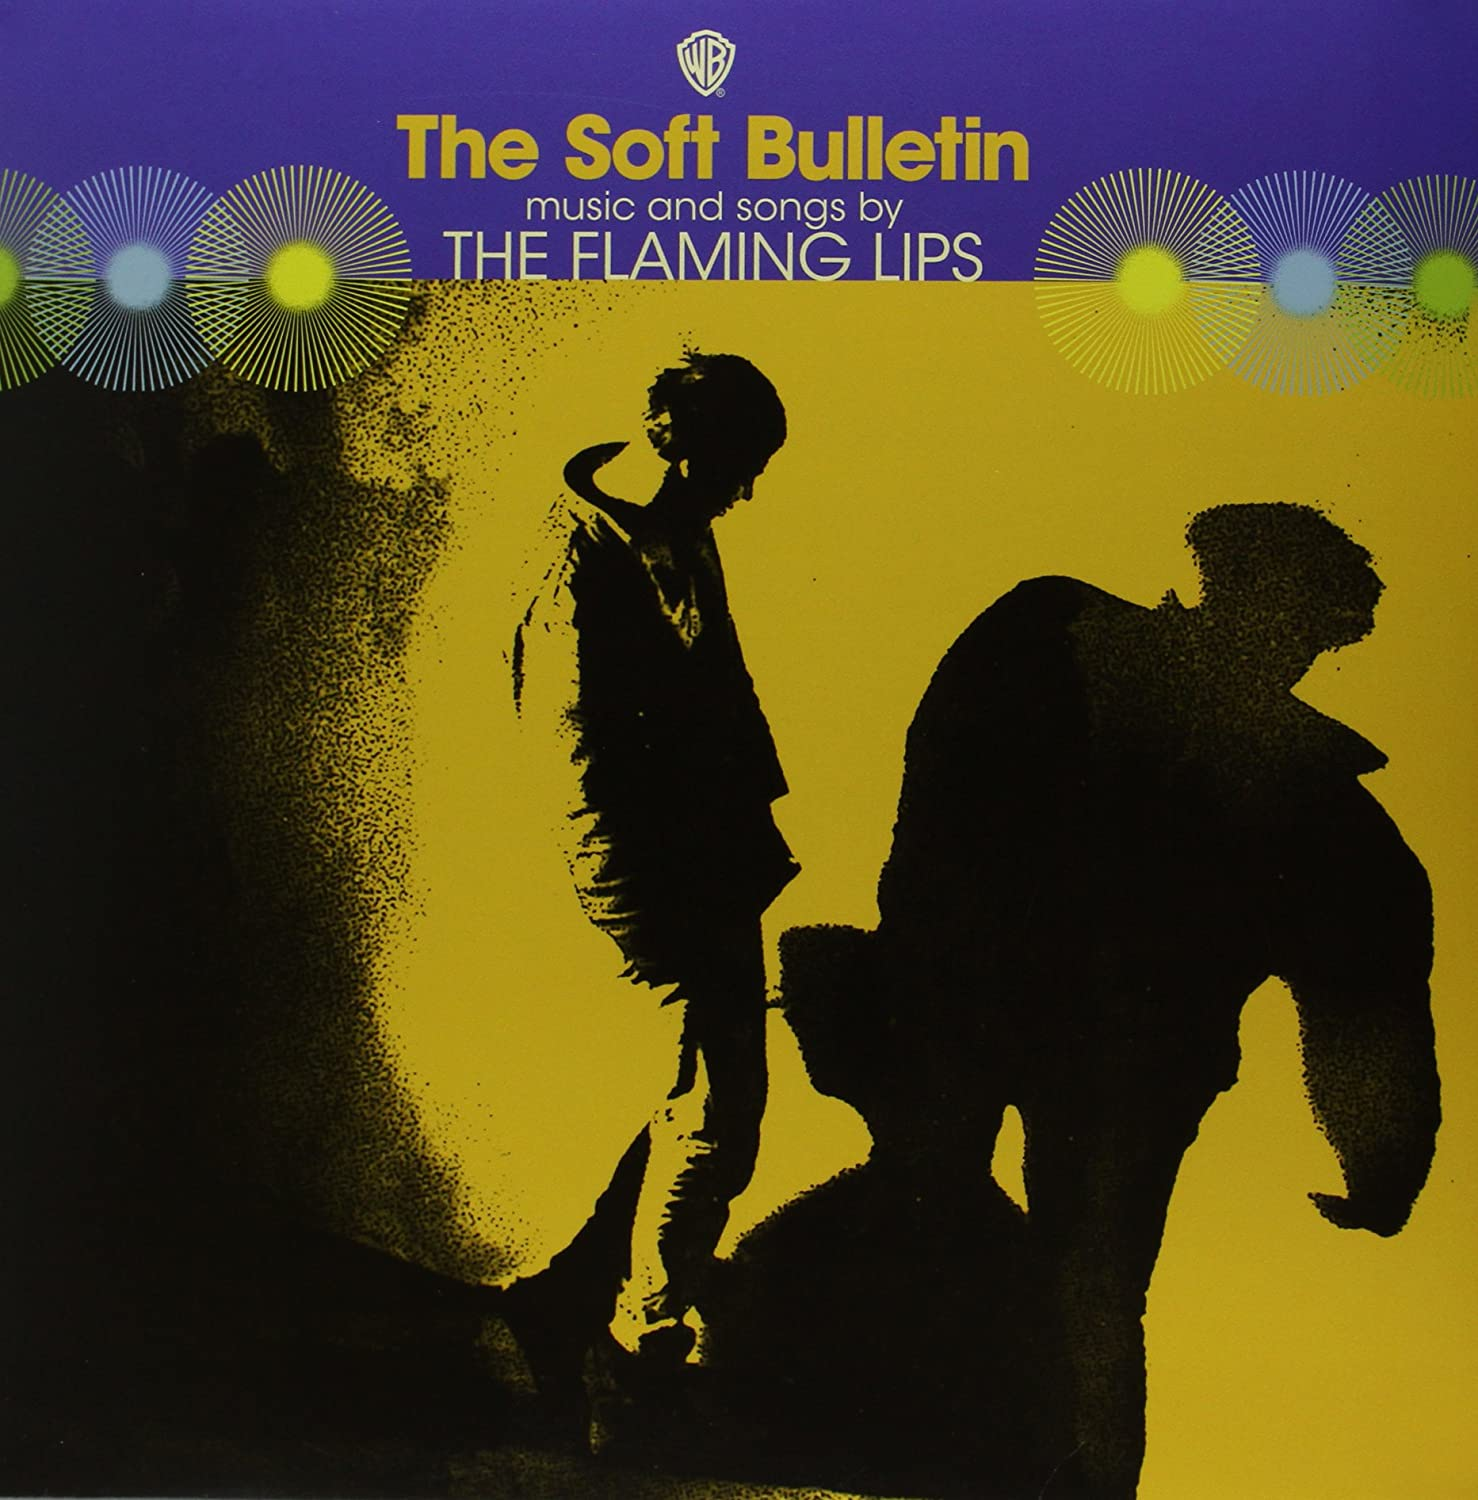 Flaming lips the soft bulletin amazon music altavistaventures Choice Image